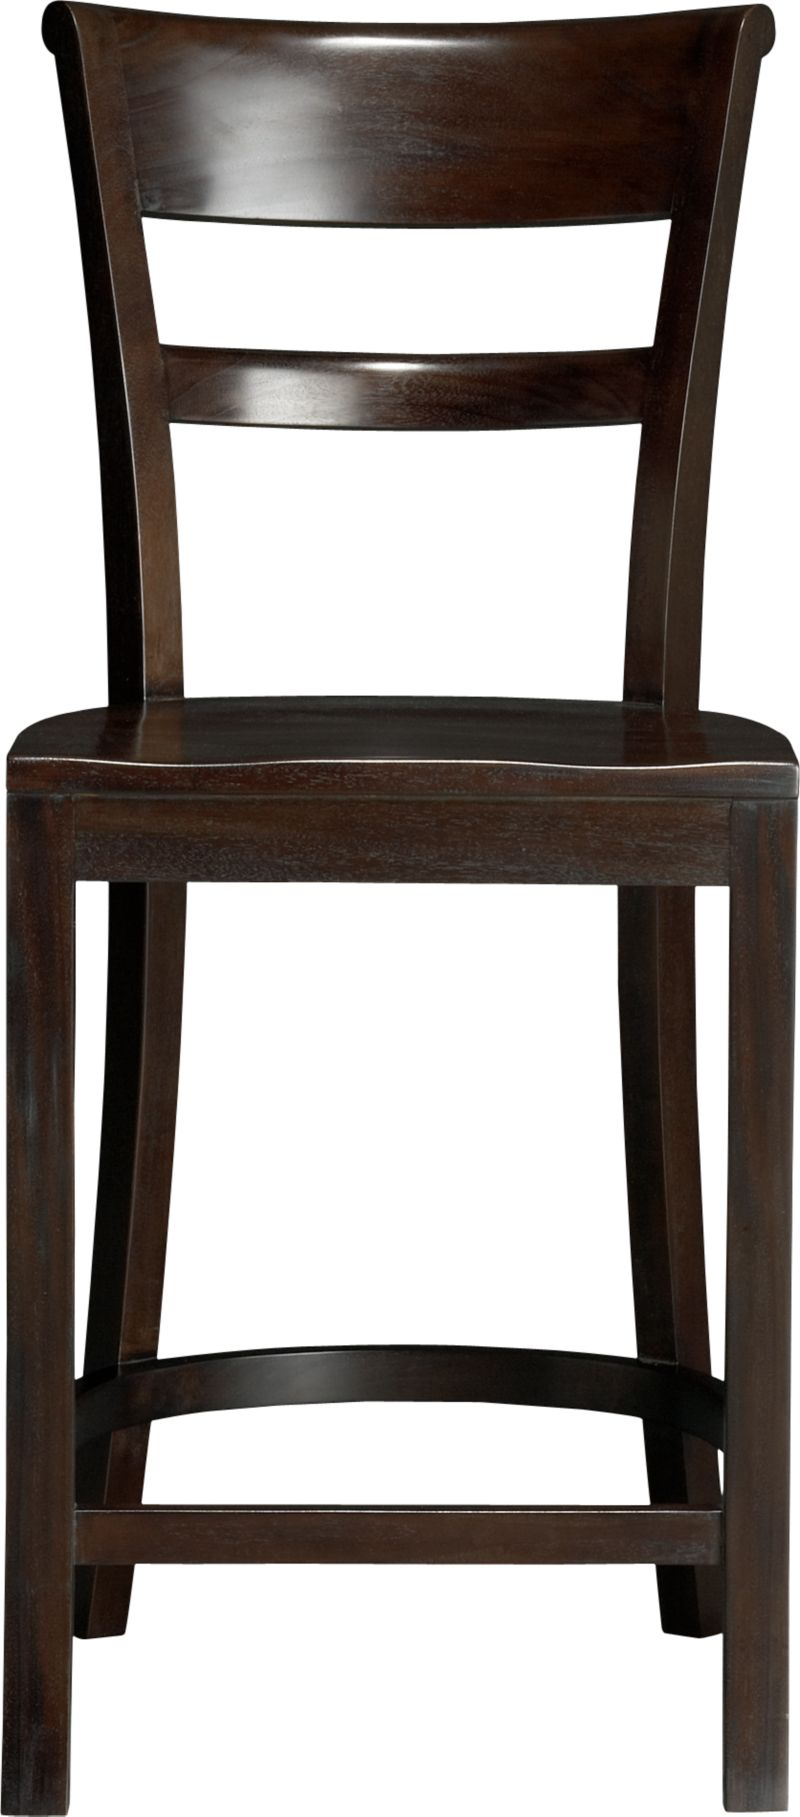 "Solid mahogany seating pulls up to counter with ease and elegance. Barstool has graceful rolled back and comfortable contours to the seat. A soft-sheen lacquer adds a finishing detail.<br /><br /><NEWTAG/><ul><li>FSC-certified solid mahogany</li><li>Clear protective lacquer finish</li><li>24""H seat sized for counters</li><li>Made in Indonesia</li></ul>"